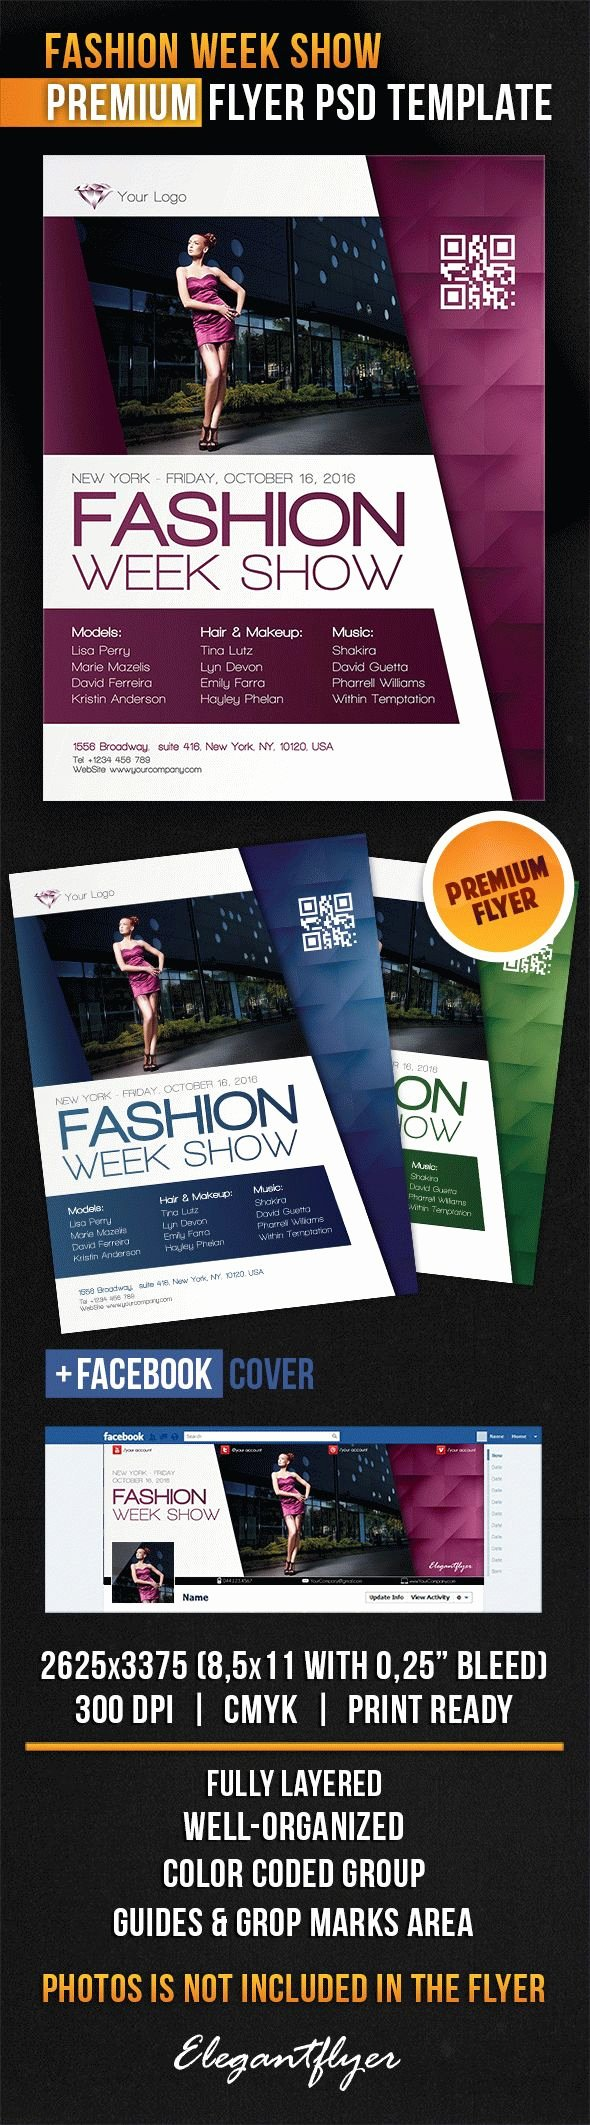 Fashion Show Flyer Template Best Of Fashion Week Show Flyer Psd Template Cover